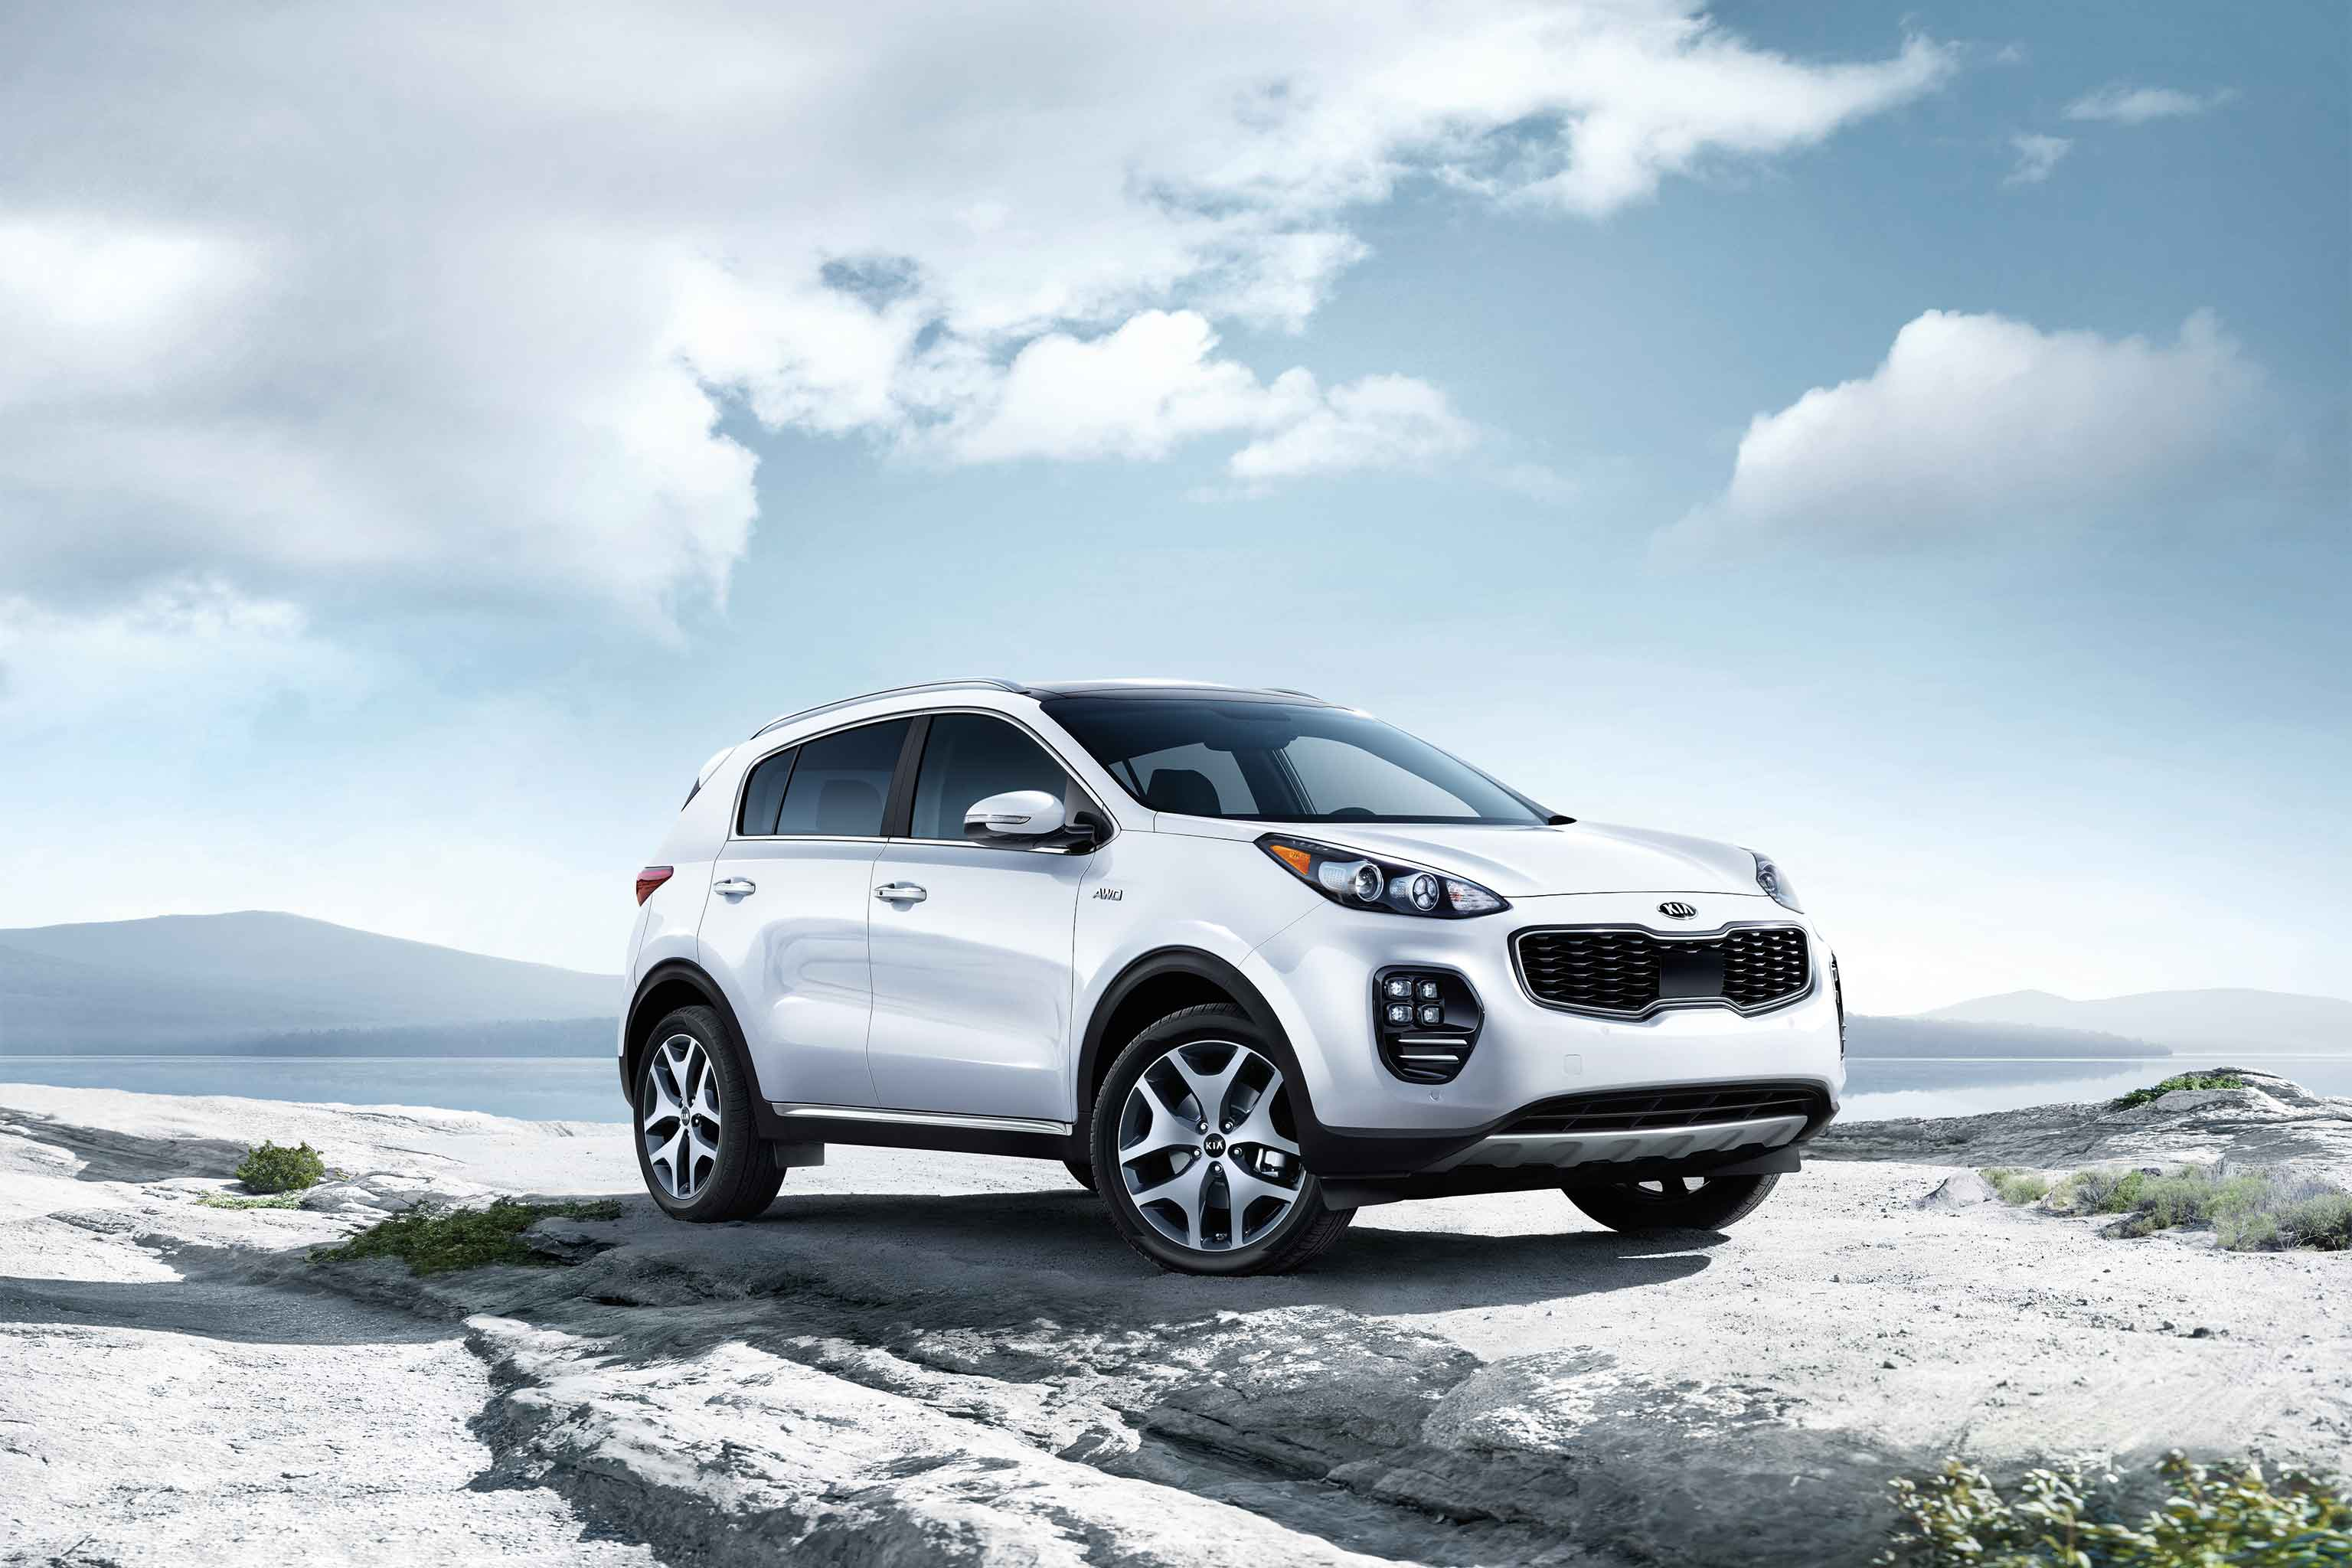 2019 Kia Sportage for Sale in Rockford, IL